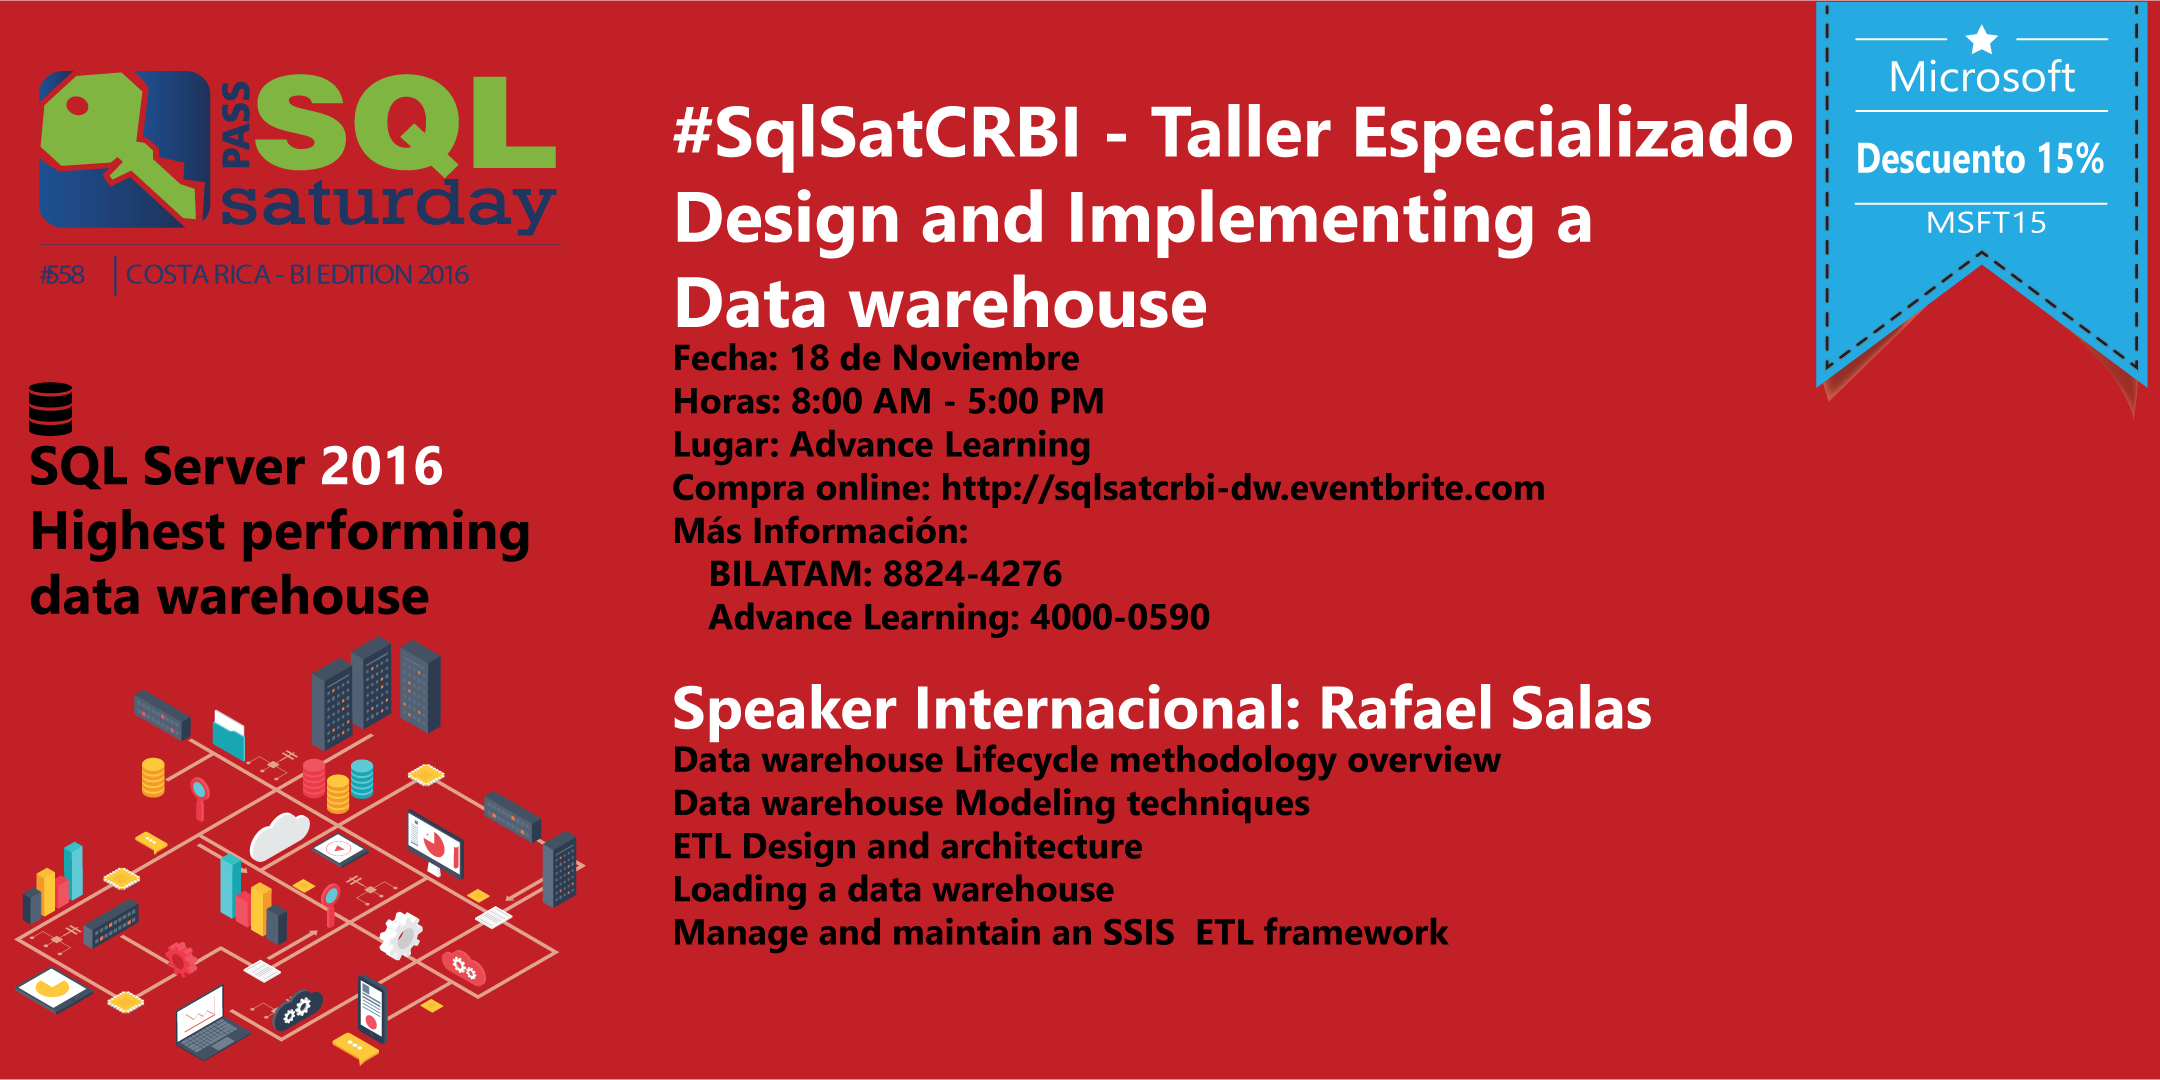 #SqlSatCRBI - Design and Implementing a Data warehouse